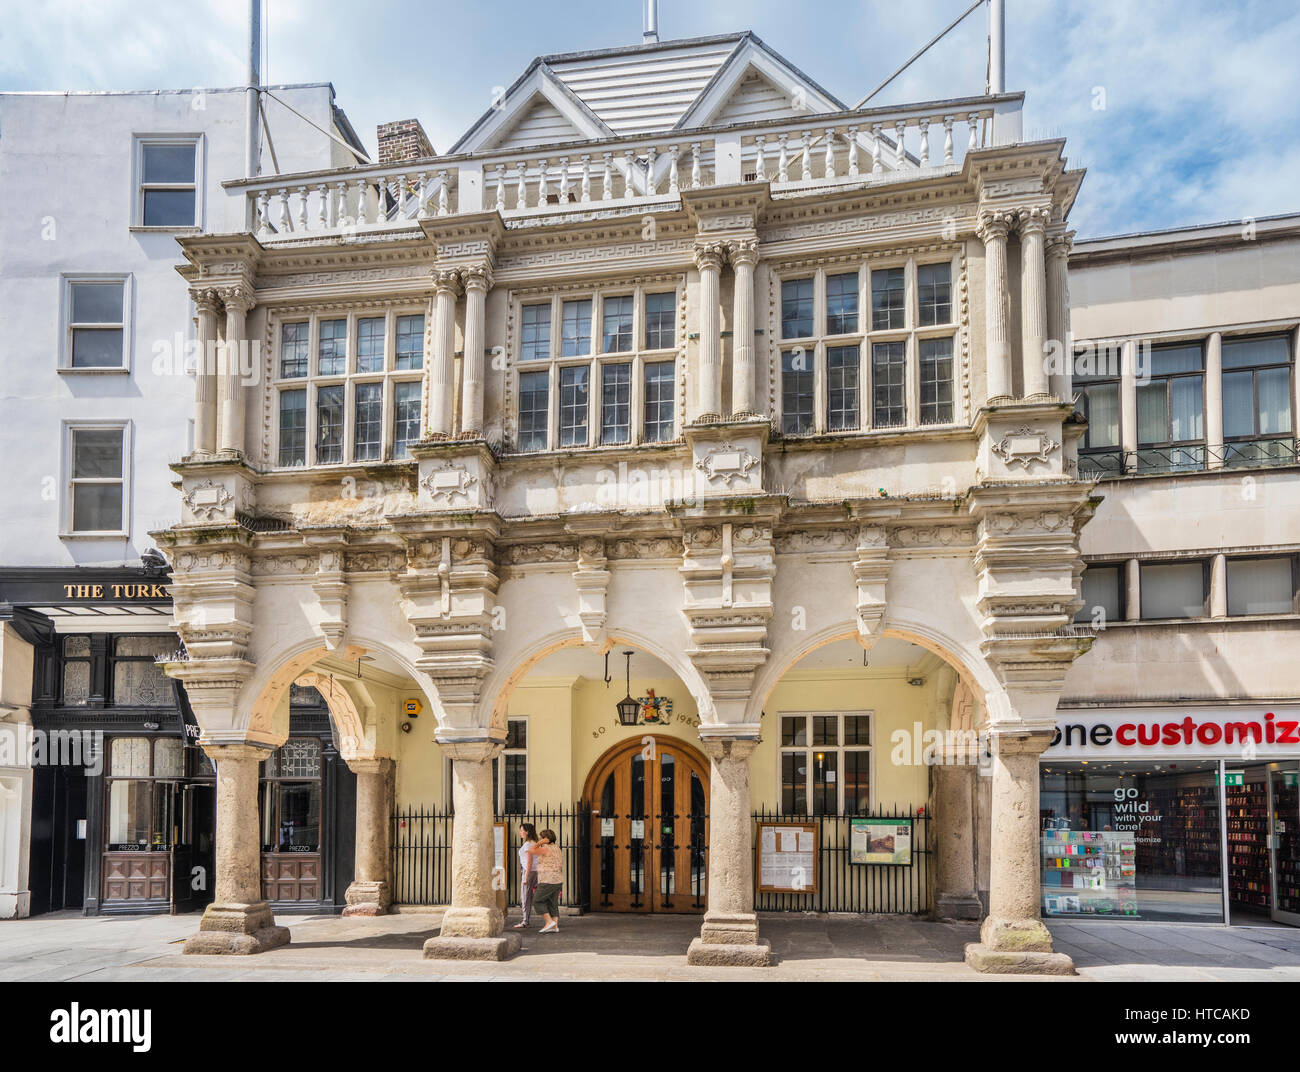 Great Britain, South West England, Devon, Exeter, Exeter Guildhall, one of the oldest municipal buildings in England - Stock Image